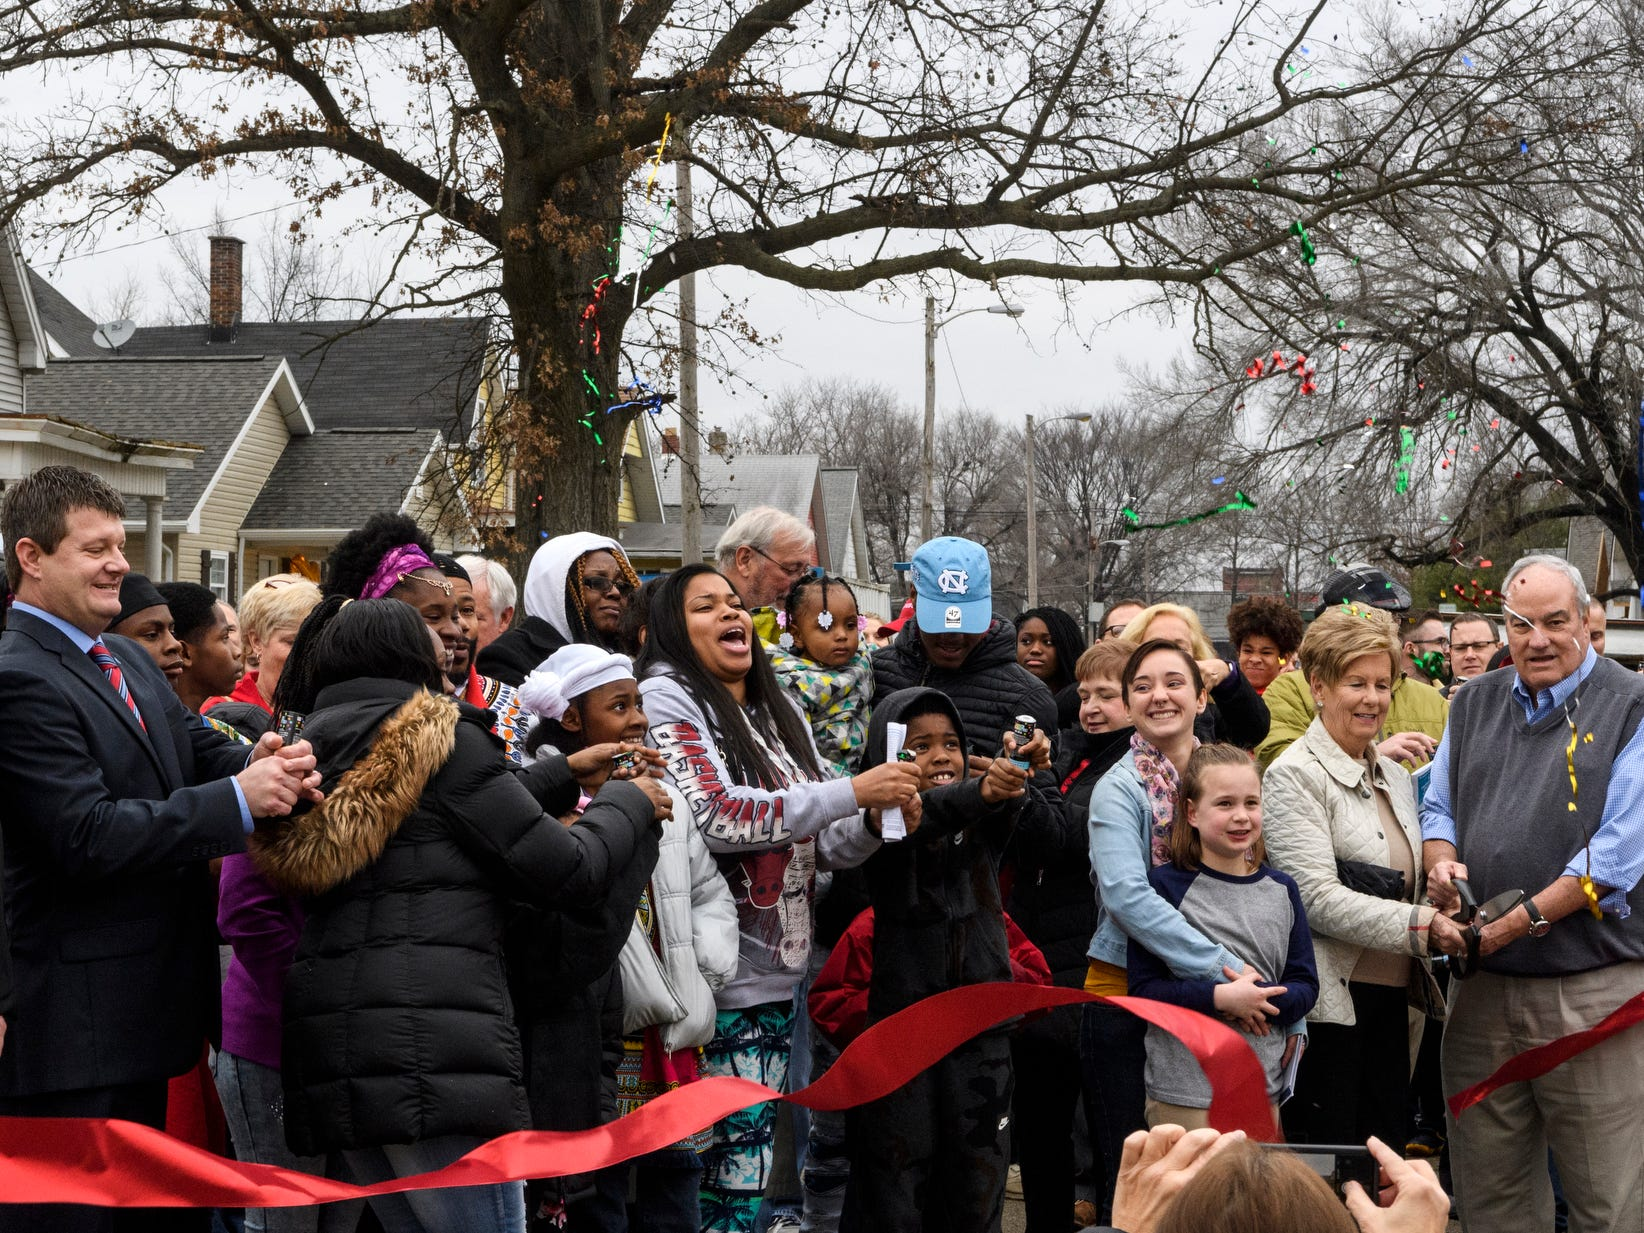 Four new homeowners and their family and friends participate in a ribbon cutting to celebrate the 500th Habitat for Humanity home dedication ceremony on Bedford Avenue in Evansville, Ind., Thursday, Dec. 20, 2018. Evansville's Habitat for Humanity is the 26th affiliate across the nation to reach 500 home builds in the community.